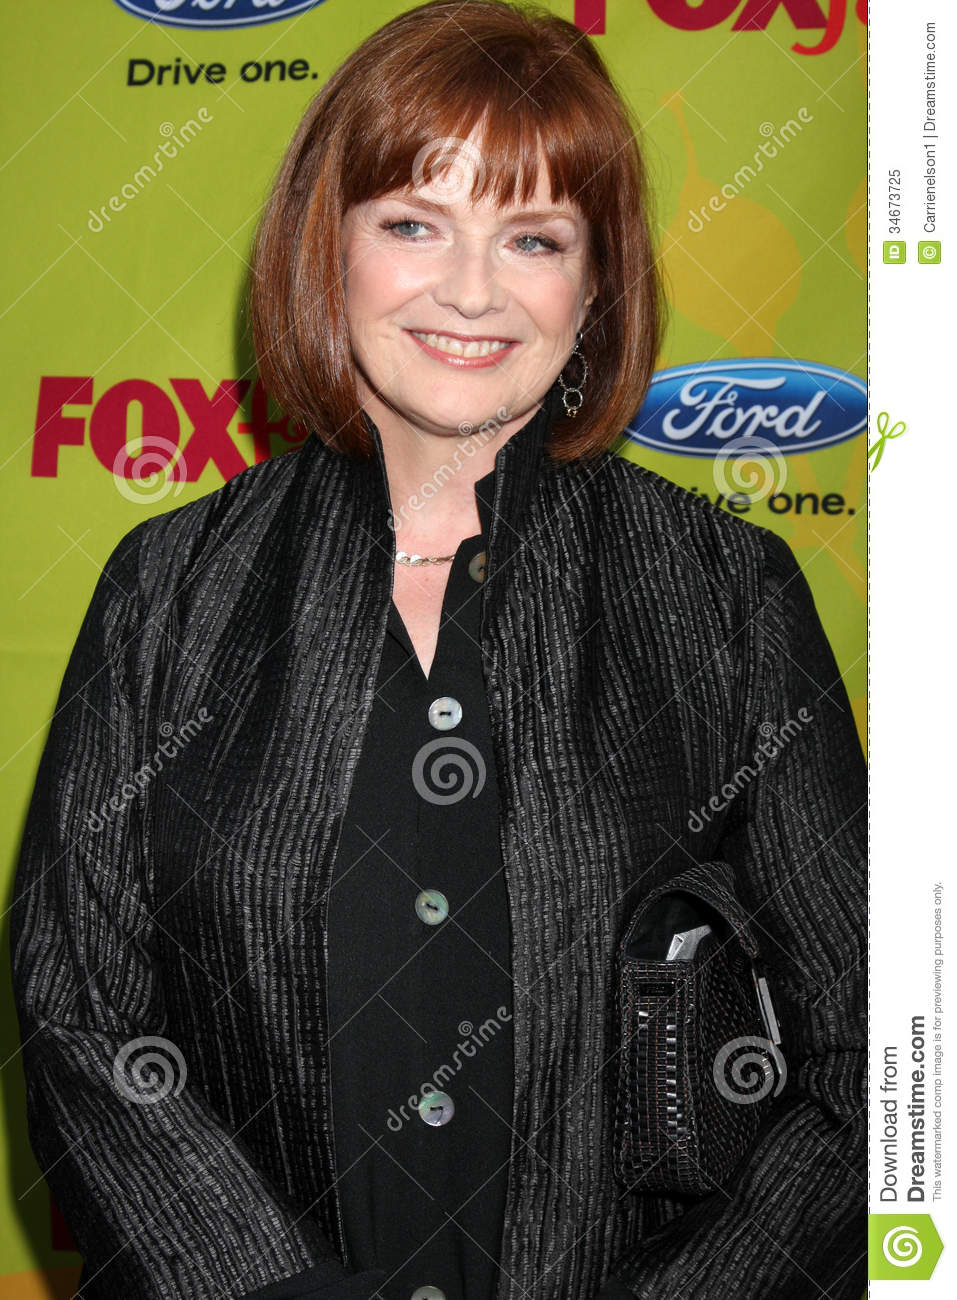 blair brown altered statesblair brown young, blair brown twitter, blair brown height, blair brown john belushi, blair brown imdb, blair brown deal, blair brown altered states, blair brown orange is the new black, blair brown volleyball, blair brown arthritis, blair brown oitnb, blair brown drummer, blair brown the affair, blair brown net worth, blair brown rallying, blair brown facebook, blair brown obituary, blair brown fringe, blair brown jewelry, blair brown penn state